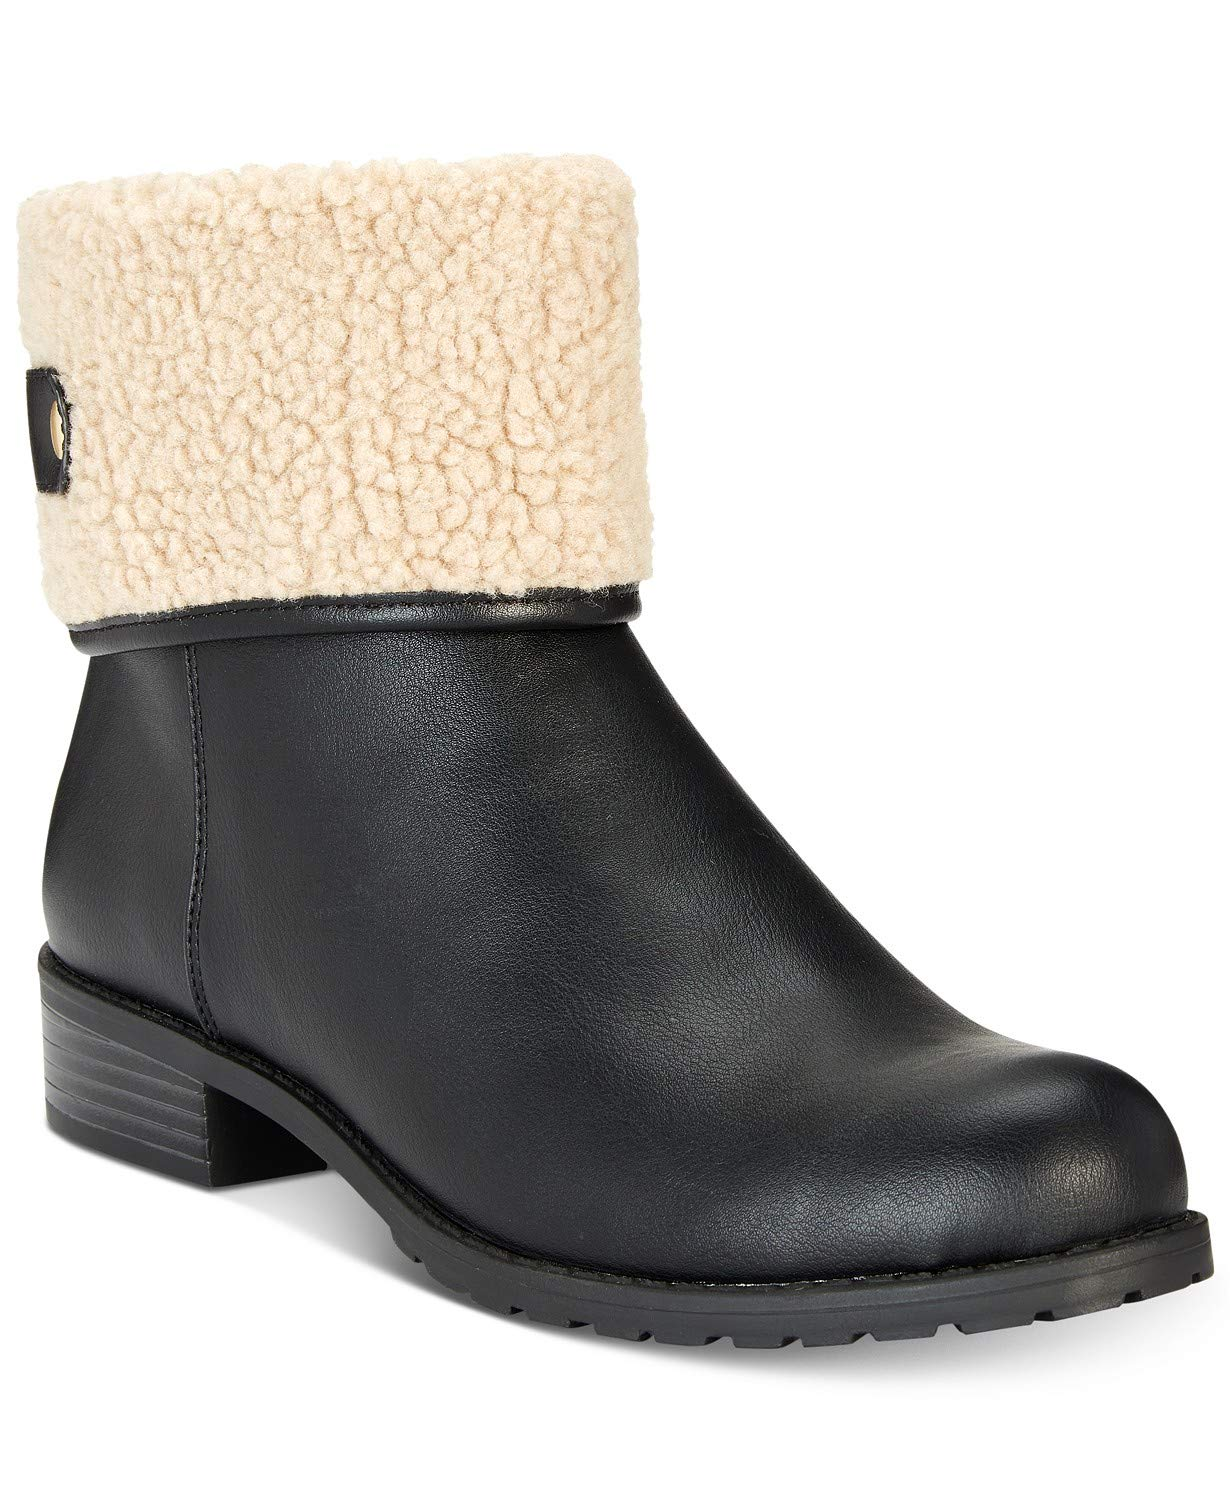 Style & Co. Womens Beana Closed Toe Ankle Fashion, Black/Natural, Size 10.0